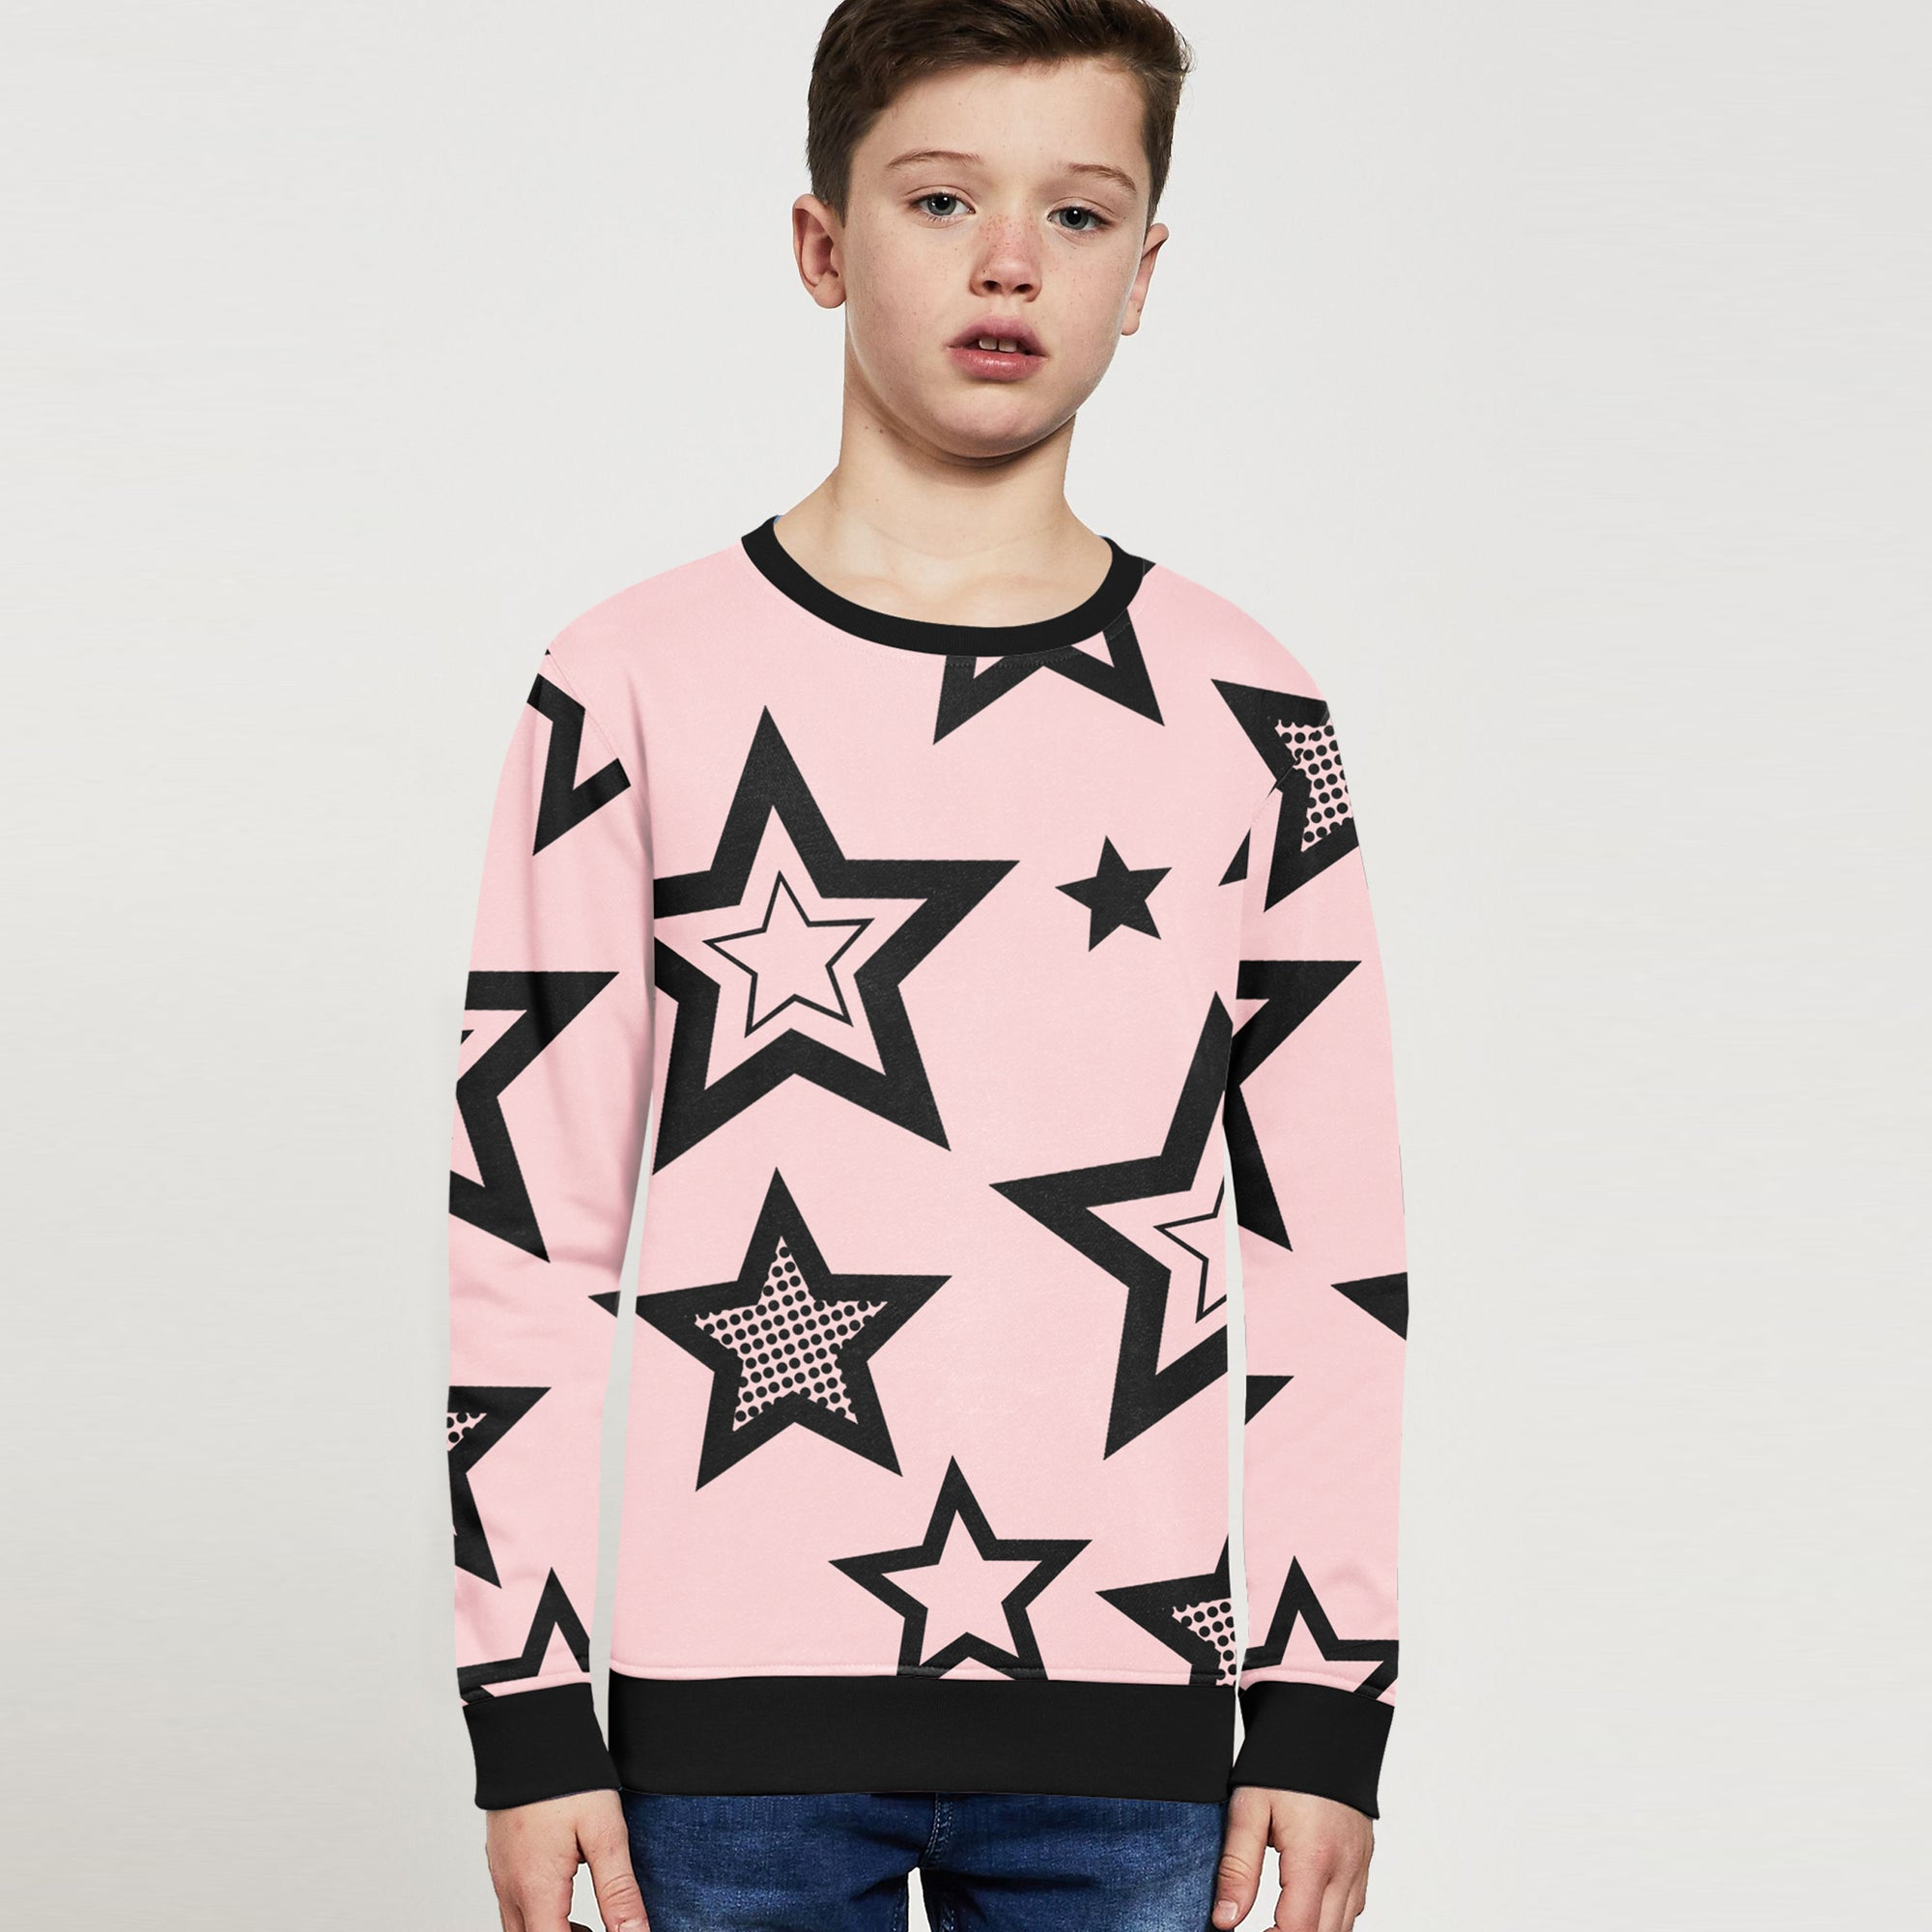 ZBaby Terry Fleece Sweatshirt For Kids-Light Pink with Stars Print-BE12824